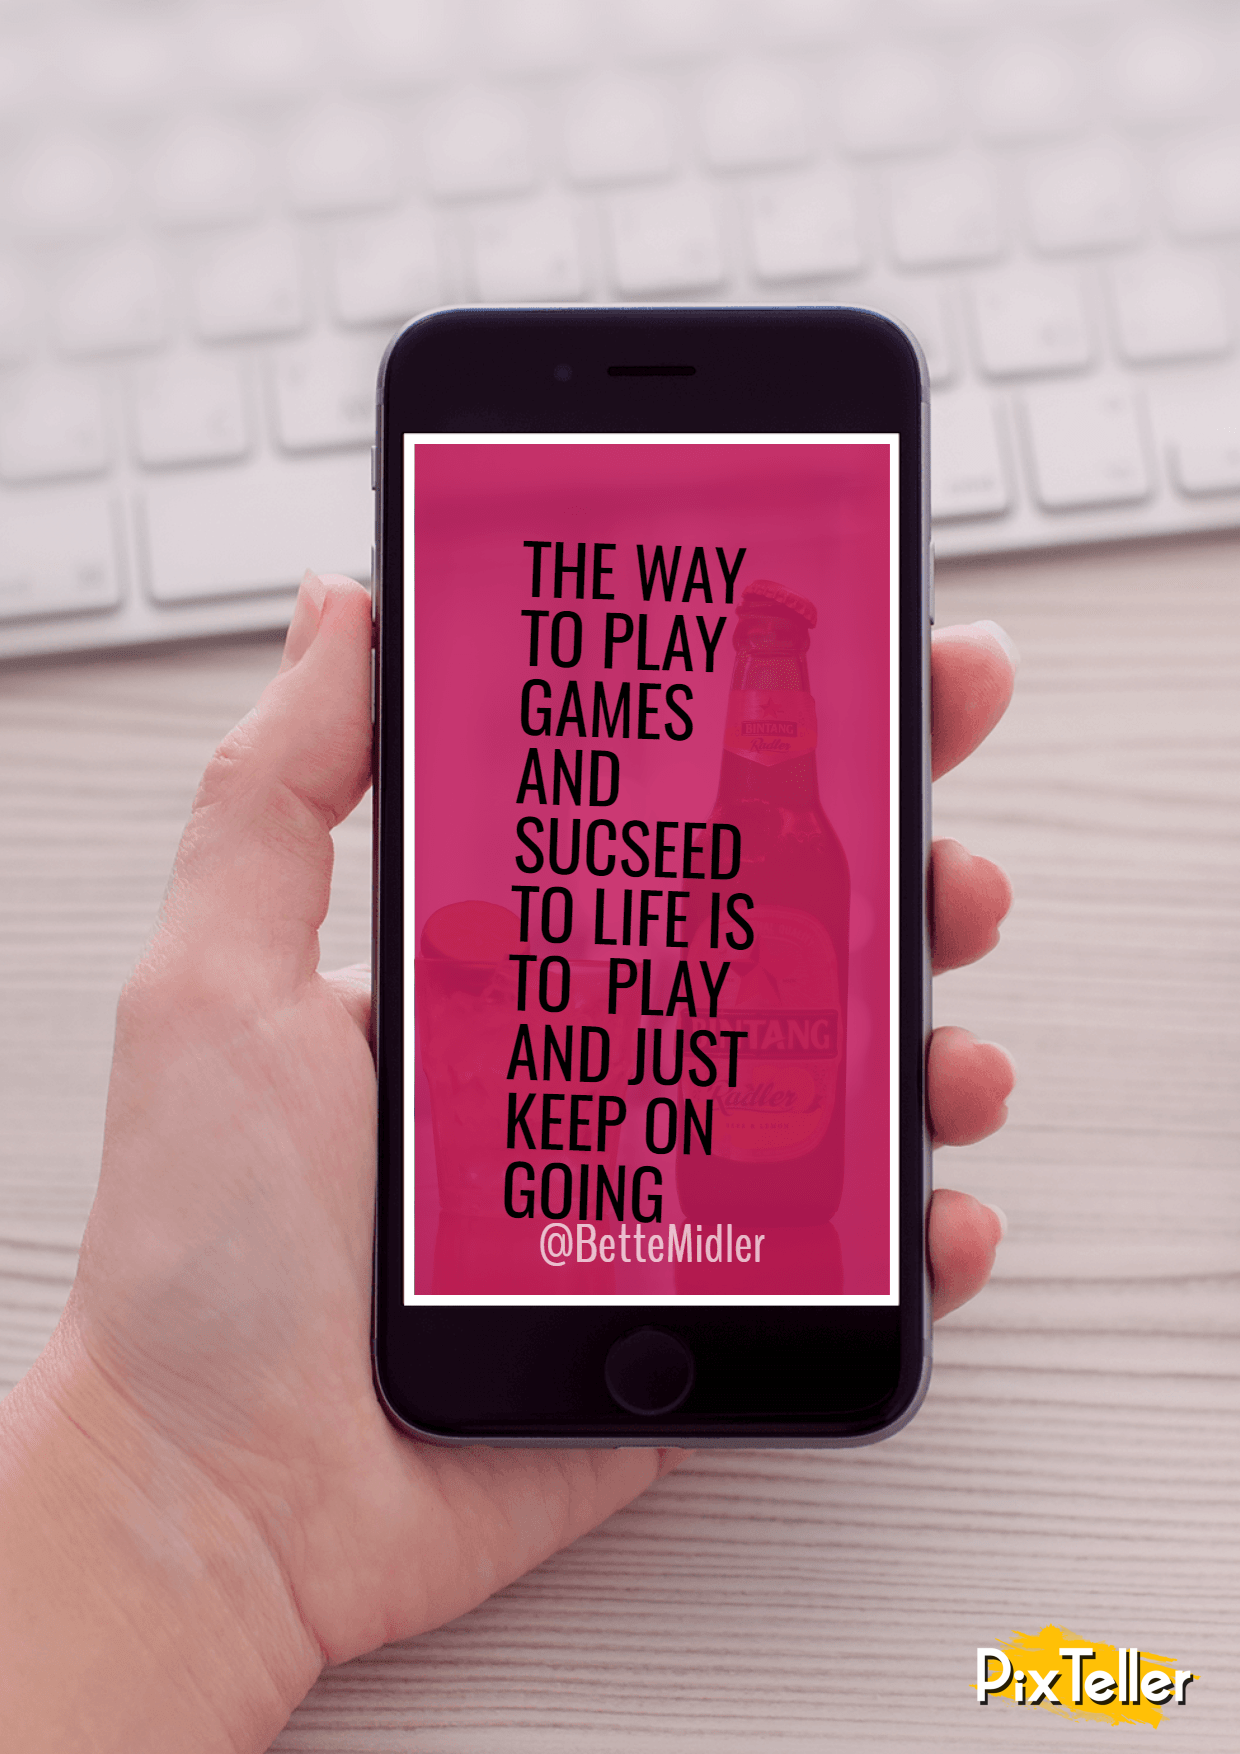 Electronic,                Device,                Gadget,                Font,                Mobile,                Phone,                Finger,                Poster,                Text,                Quote,                Mockup,                Inspiration,                Life,                 Free Image